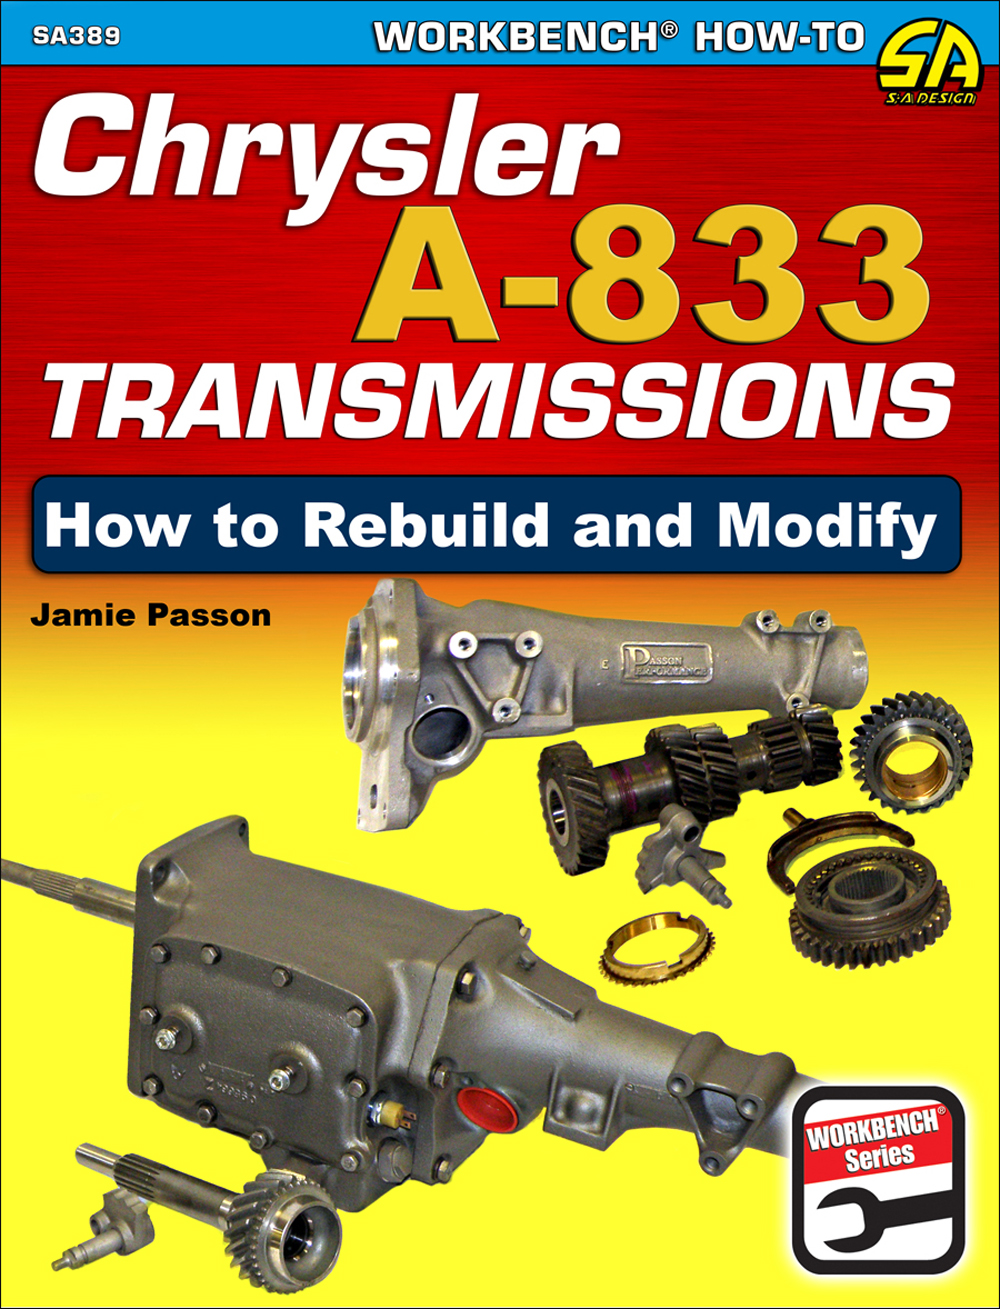 How to Rebuild and Modify Chrysler A-833 Transmissions 1964-1987